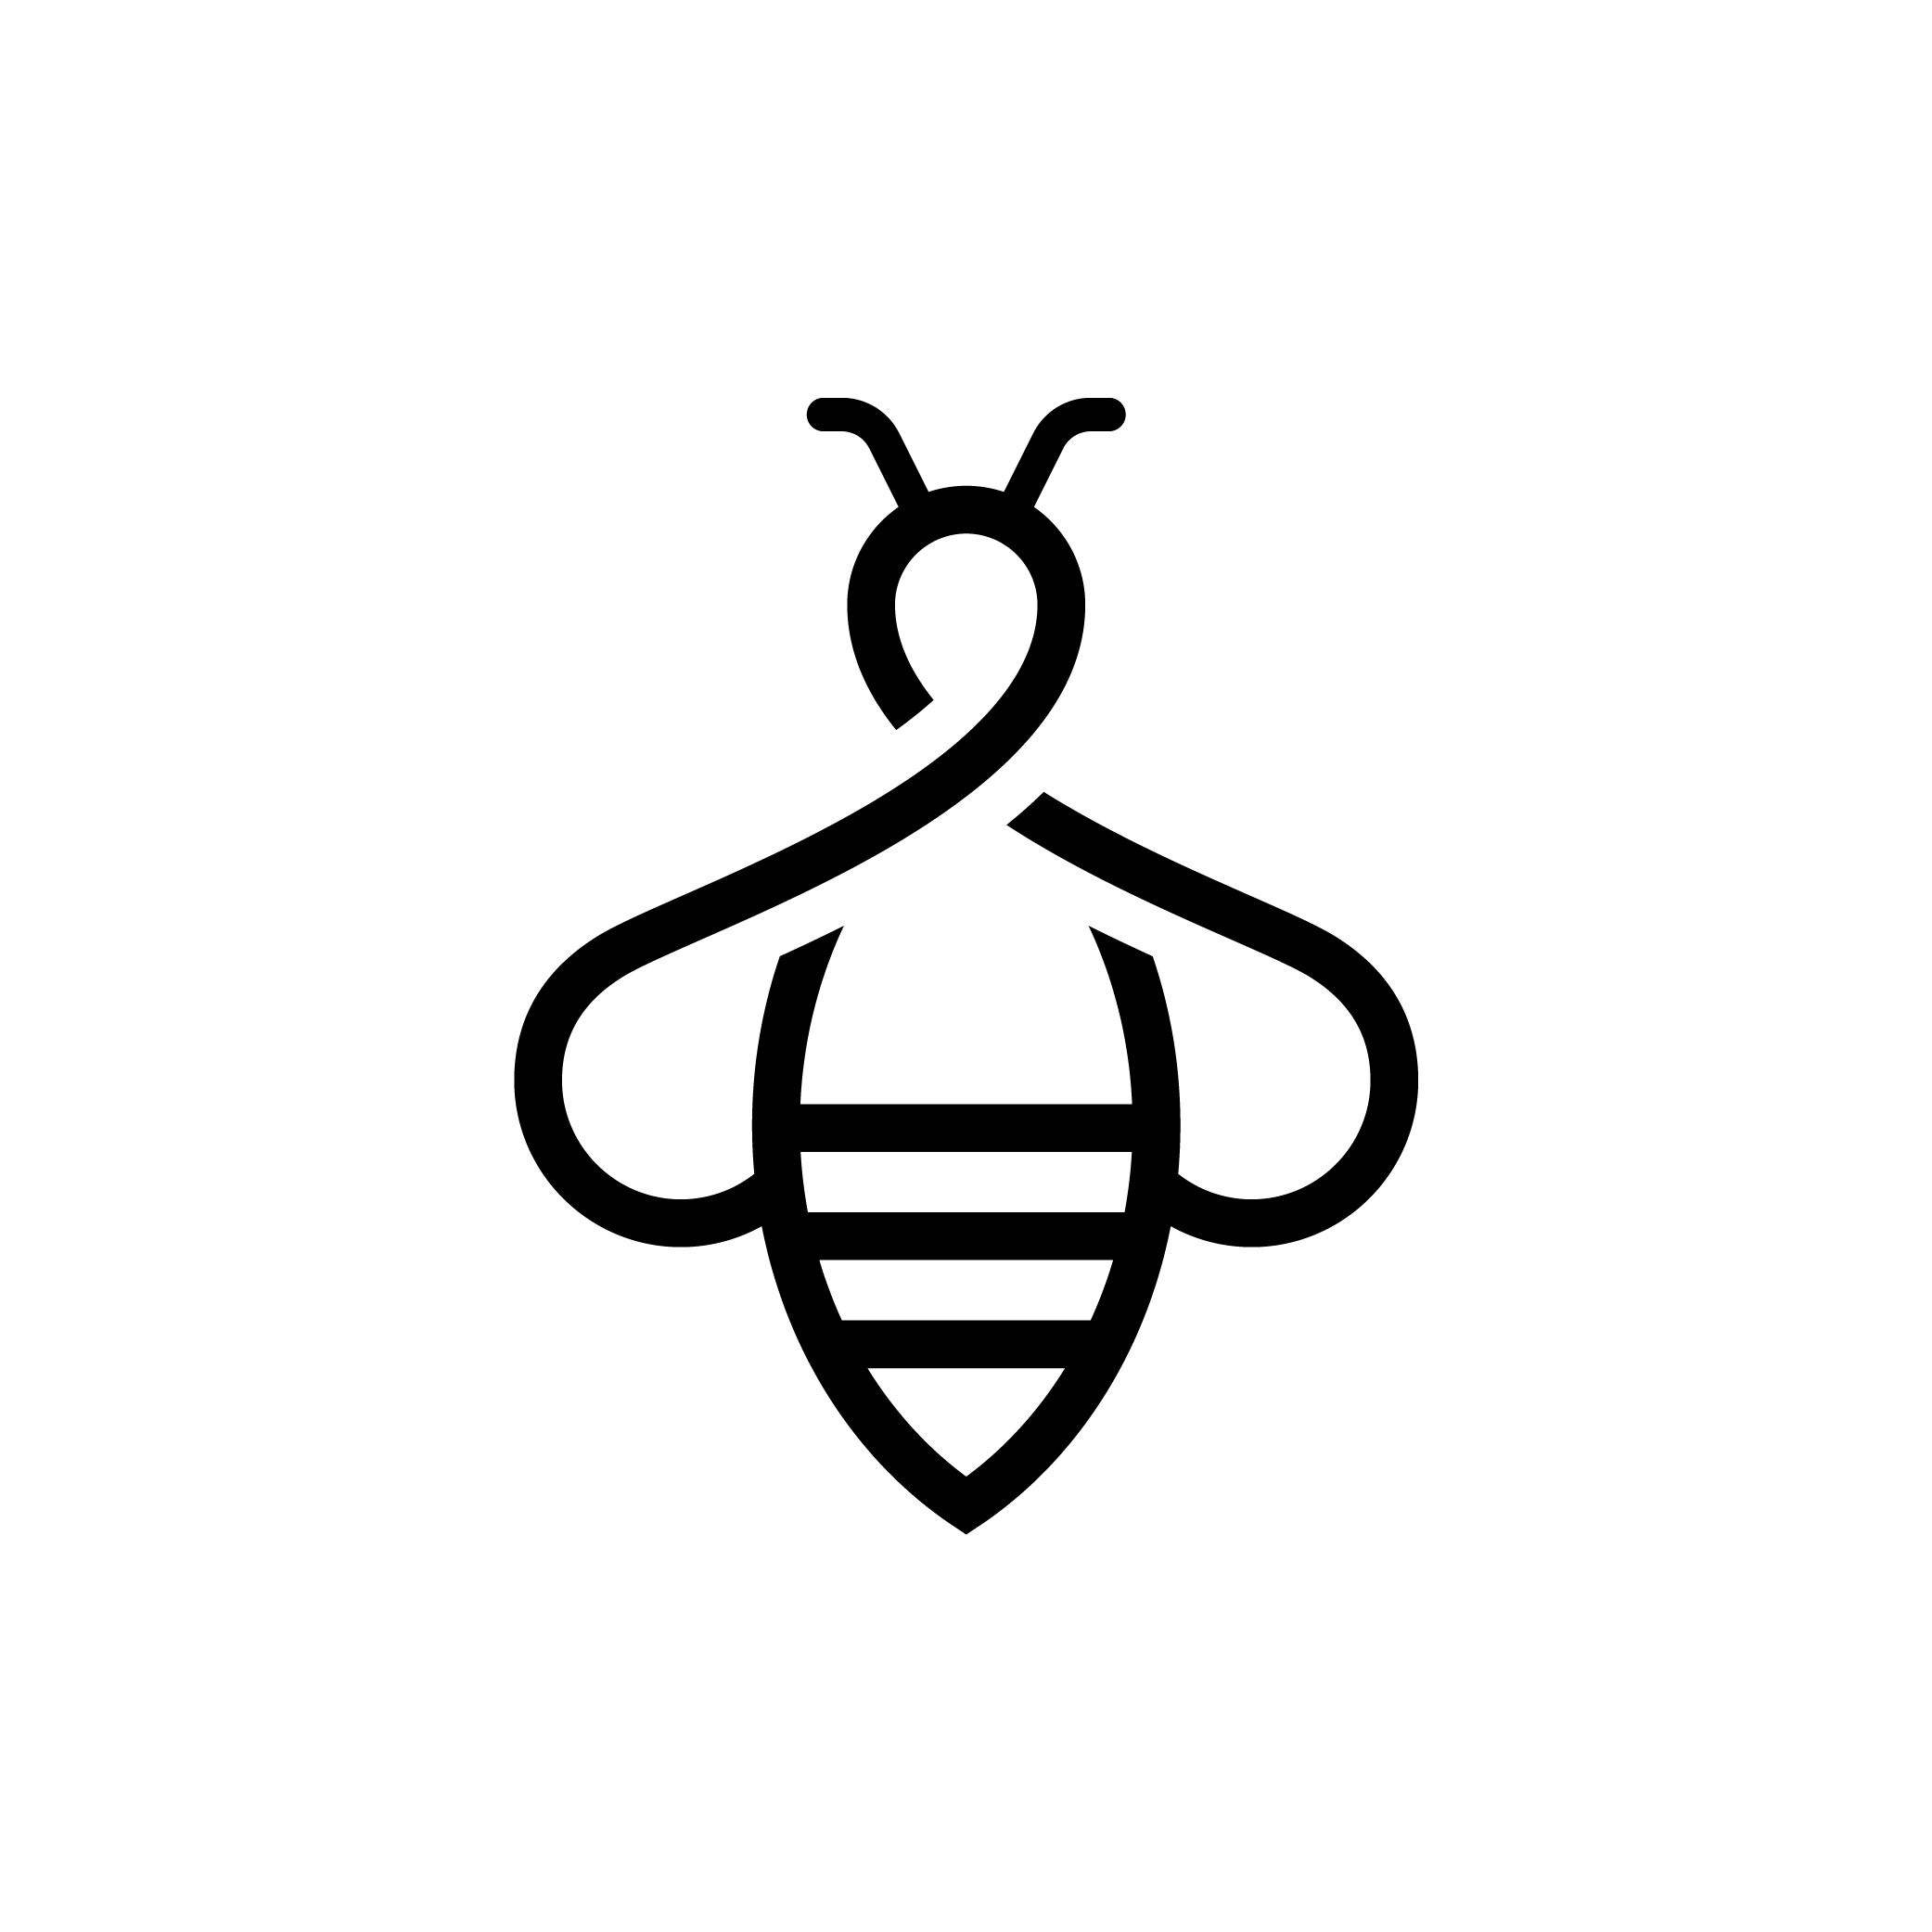 Logo Design Need for a Minimalist outline of a bee